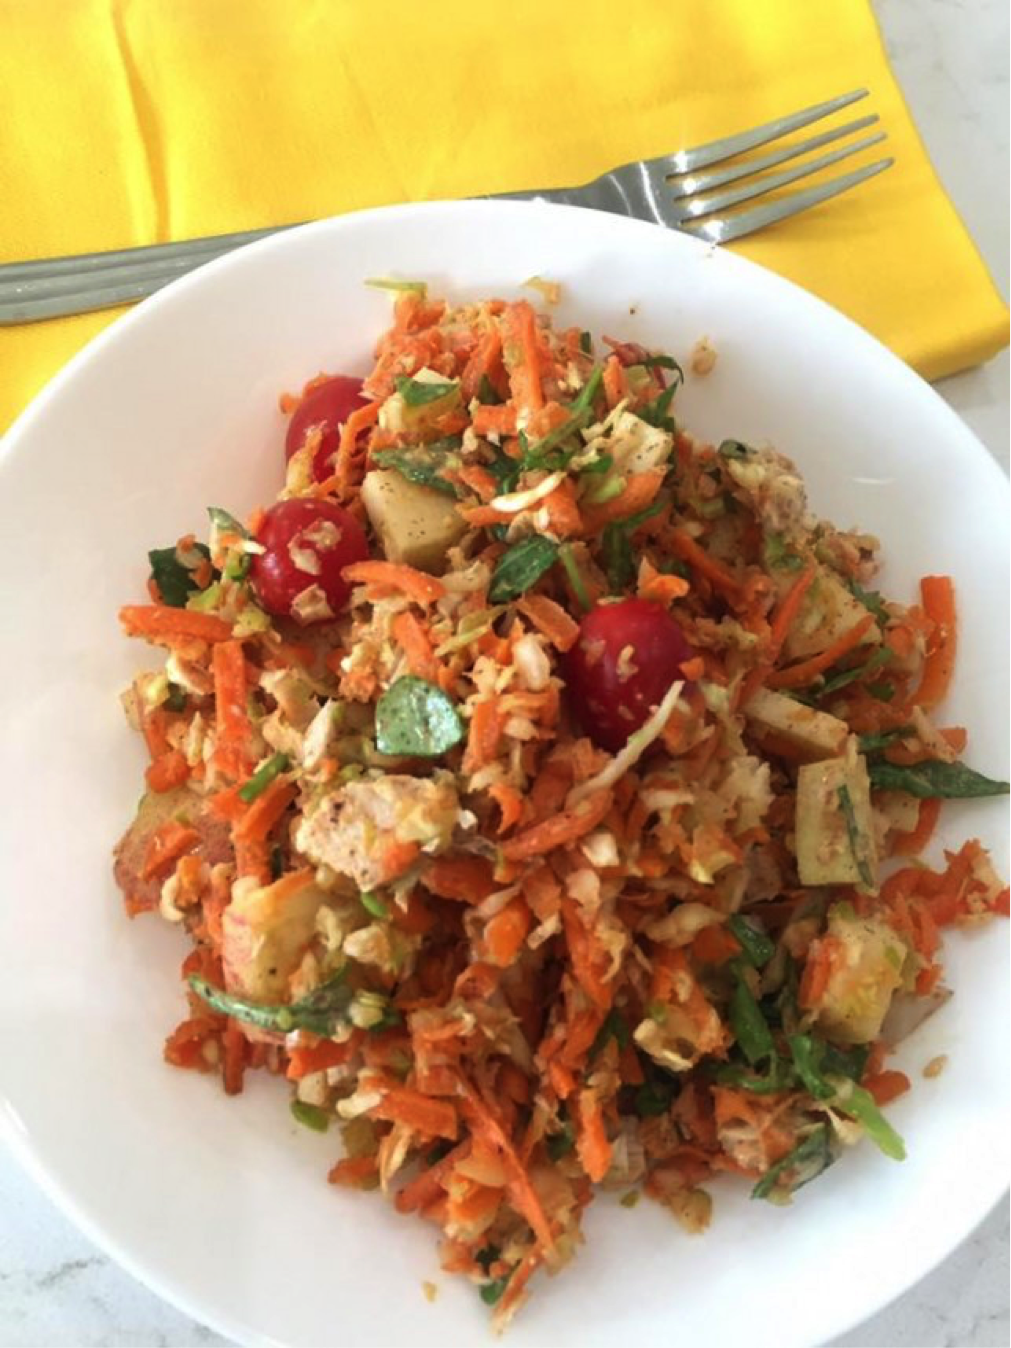 The Cabbage and Carrot Salad with Ginger Almond Dressing